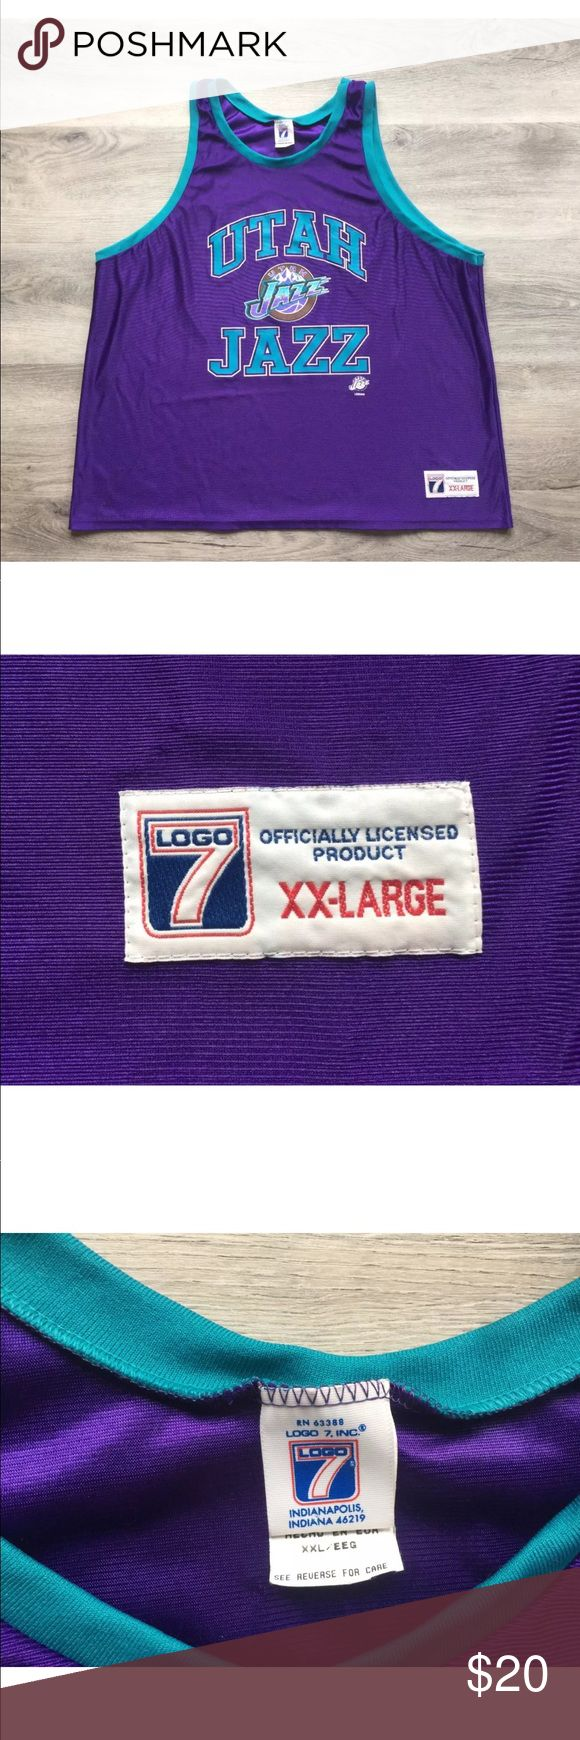 """Utah Jazz Vintage 1990's Logo 7 Men's 2XL Jersey Brand:   Logo 7 Condition:   Previously Worn - Great Condition!!! Item Specifics:  Utah Jazz, Logo 7, Karl Malone, John Stockton, Jerry Sloan, Jeff Hornacek, Vintage, 1990's, 90's Material:  100% Polyester Color:   Utah Jazz Purple Size: Adult Men's 2XL (See Measurements For Specifics)  Please Remember all Clothing Items may fit differently depending on Brand, Fit, Use or Prior customization.   Measurements:  Pit to Pit (Across Chest): 24""""…"""